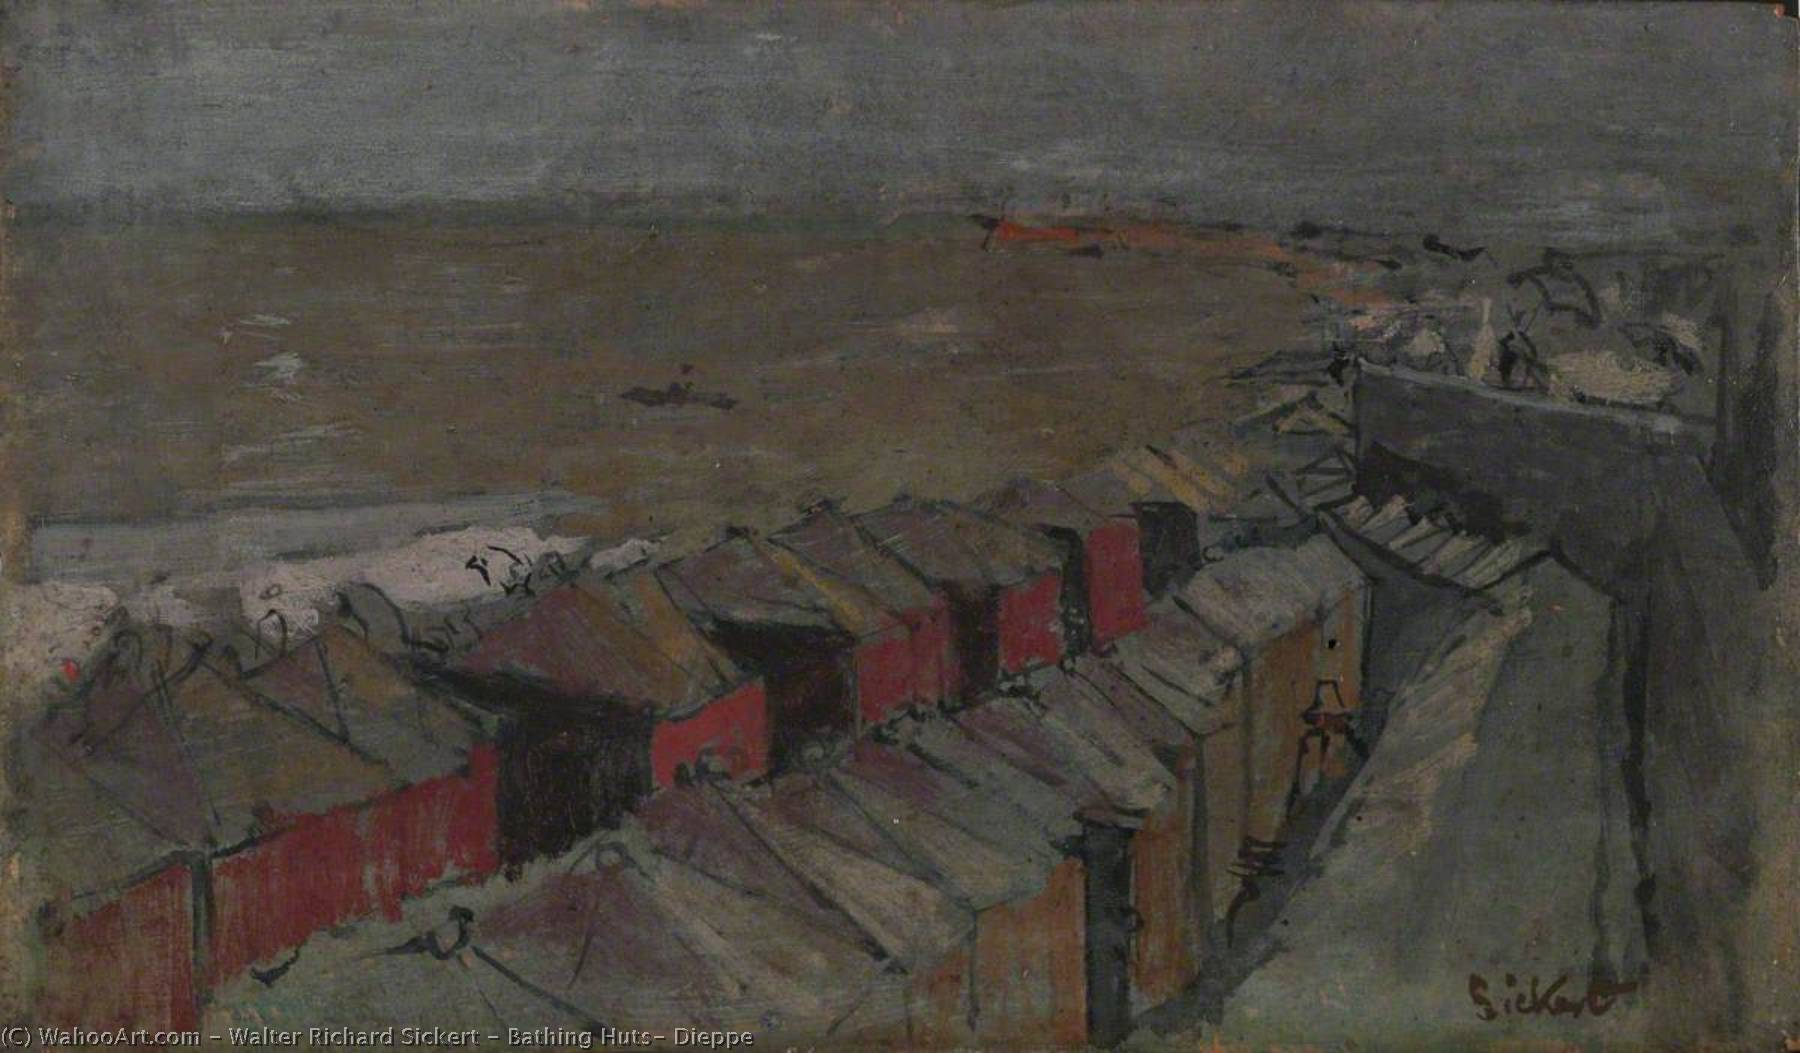 famous painting Bathing Huts, Dieppe of Walter Richard Sickert